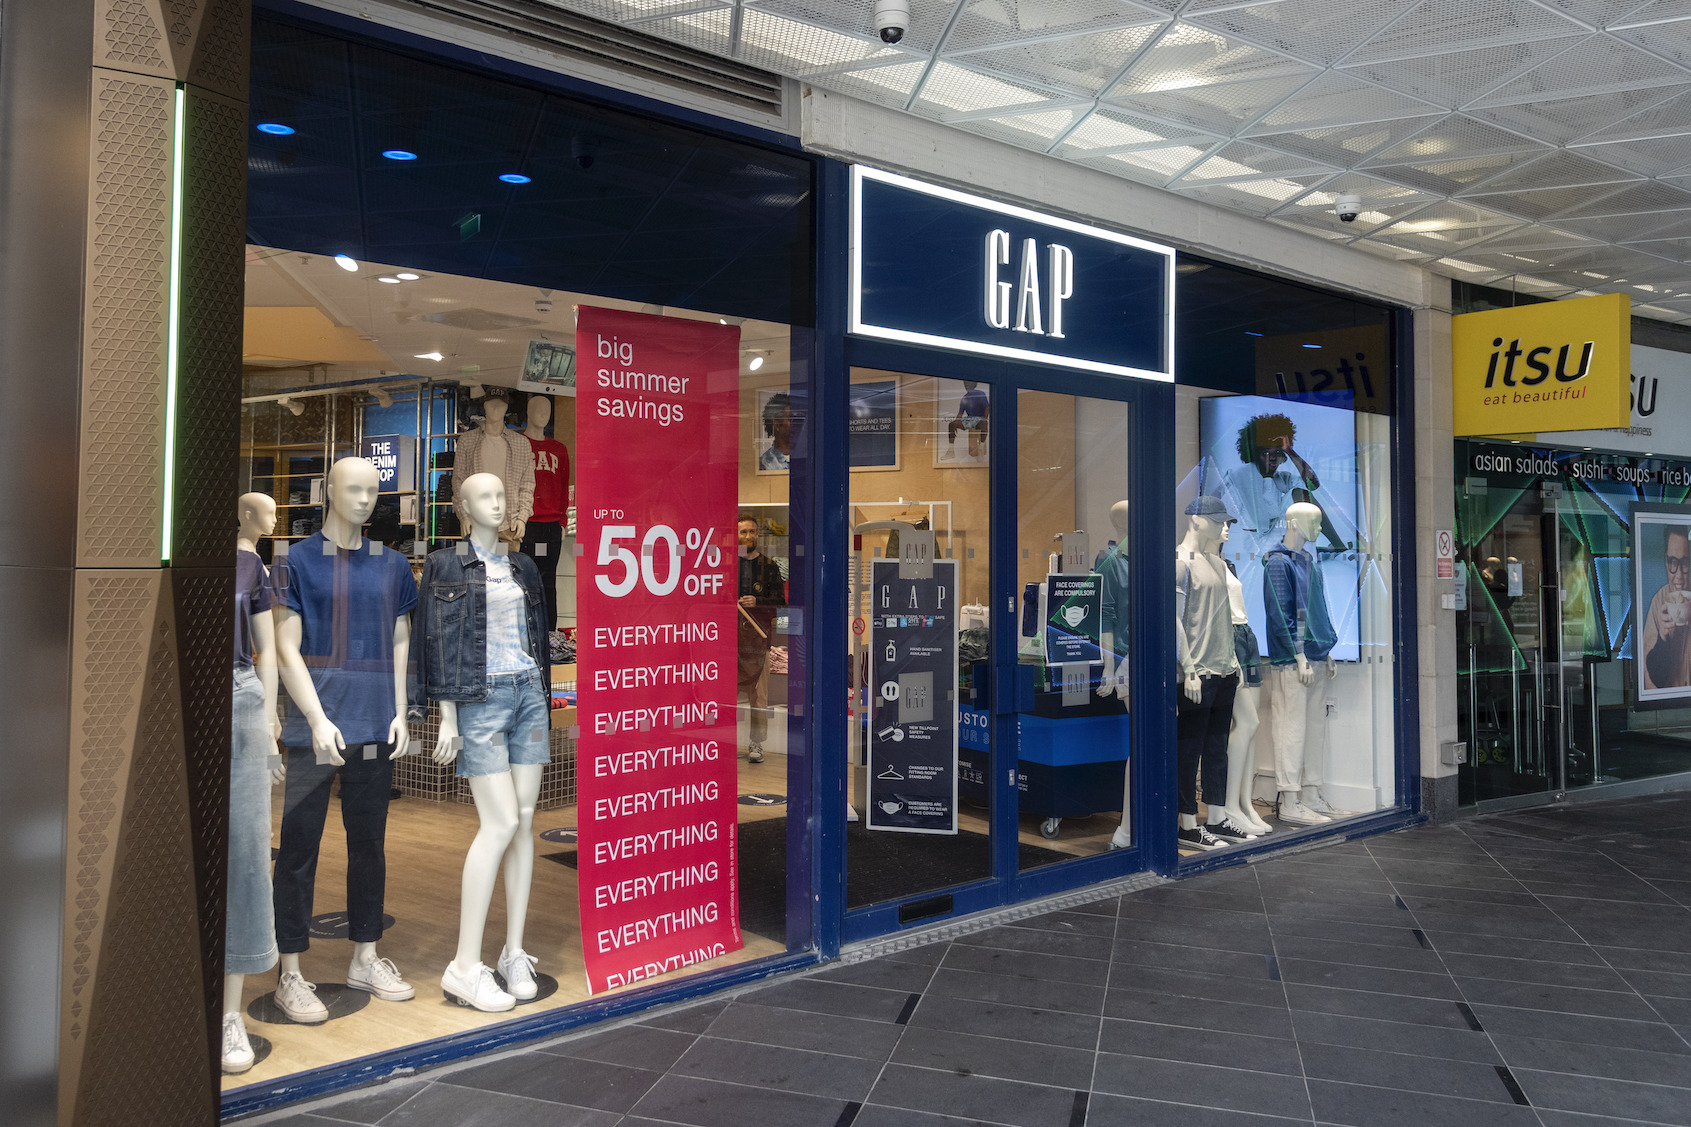 """The GAP store in Islington, London. U.S. fashion giant Gap has confirmed it plans to close all its 81 stores in the UK and Ireland and go online-only. The firm said it would close all its stores """"in a phased manner"""" between the end of August and the end of September."""